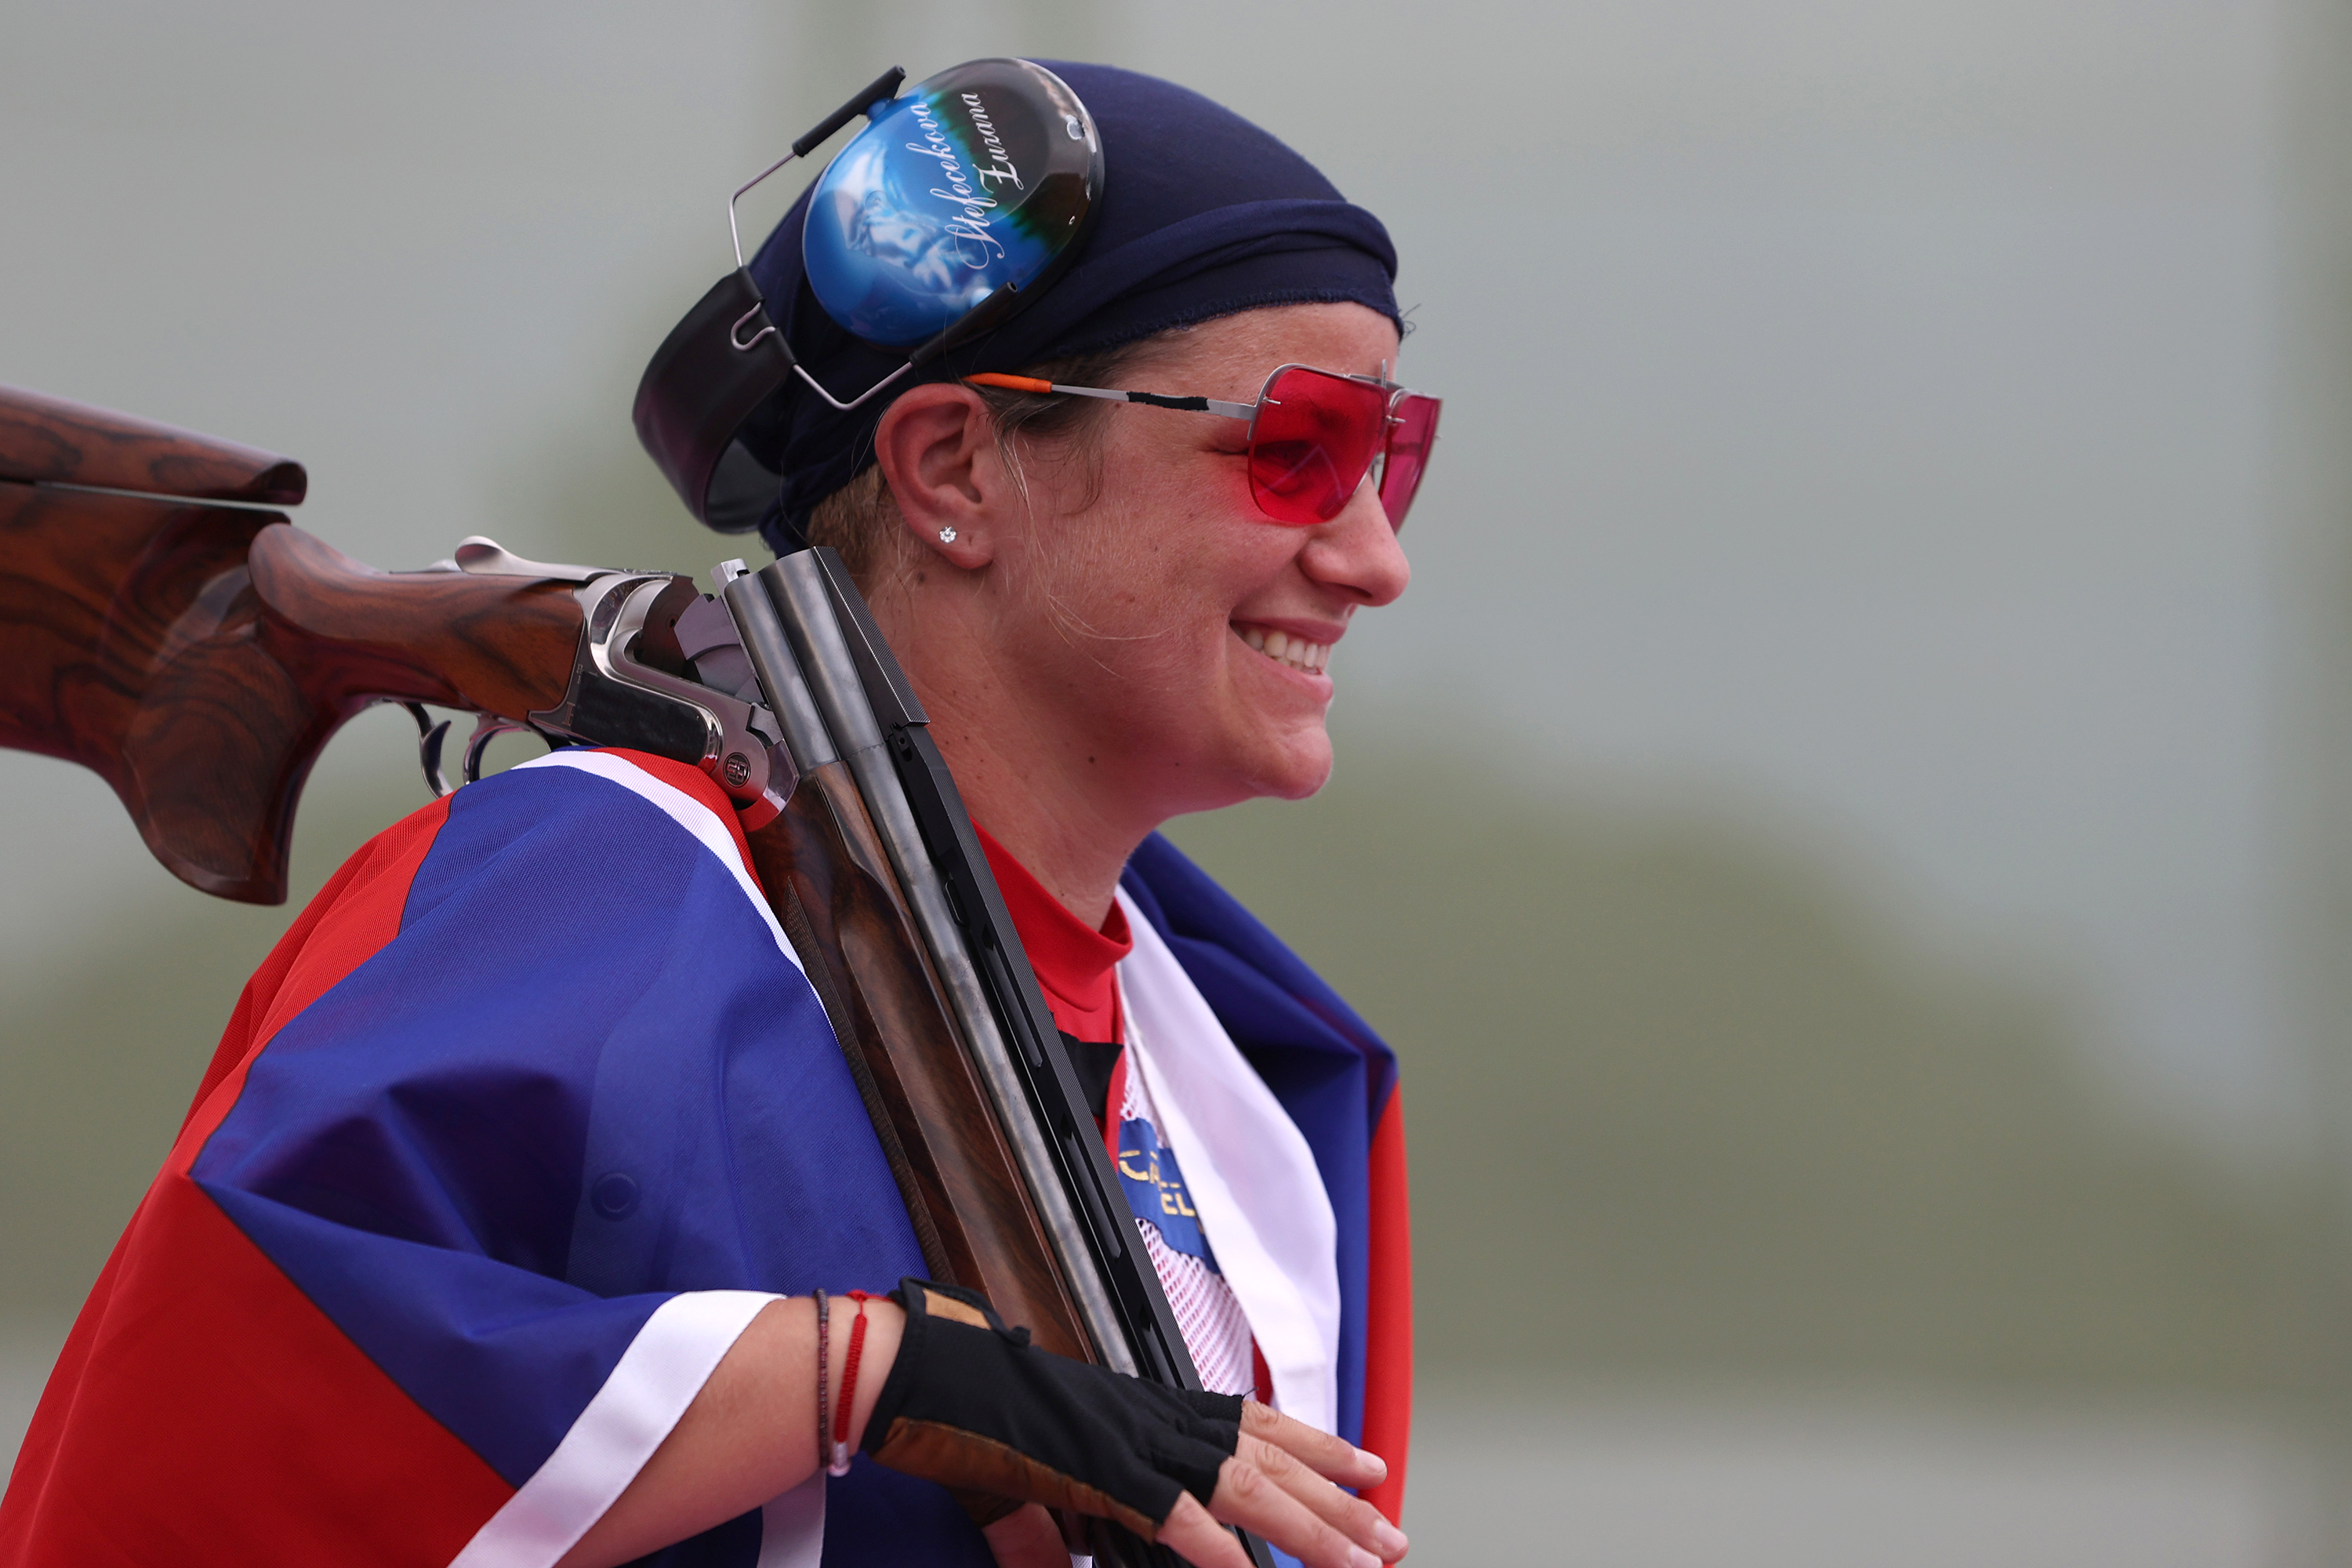 Slovakian sets an Olympic record, San Marino earns first-ever Olympic medal in women's trap final